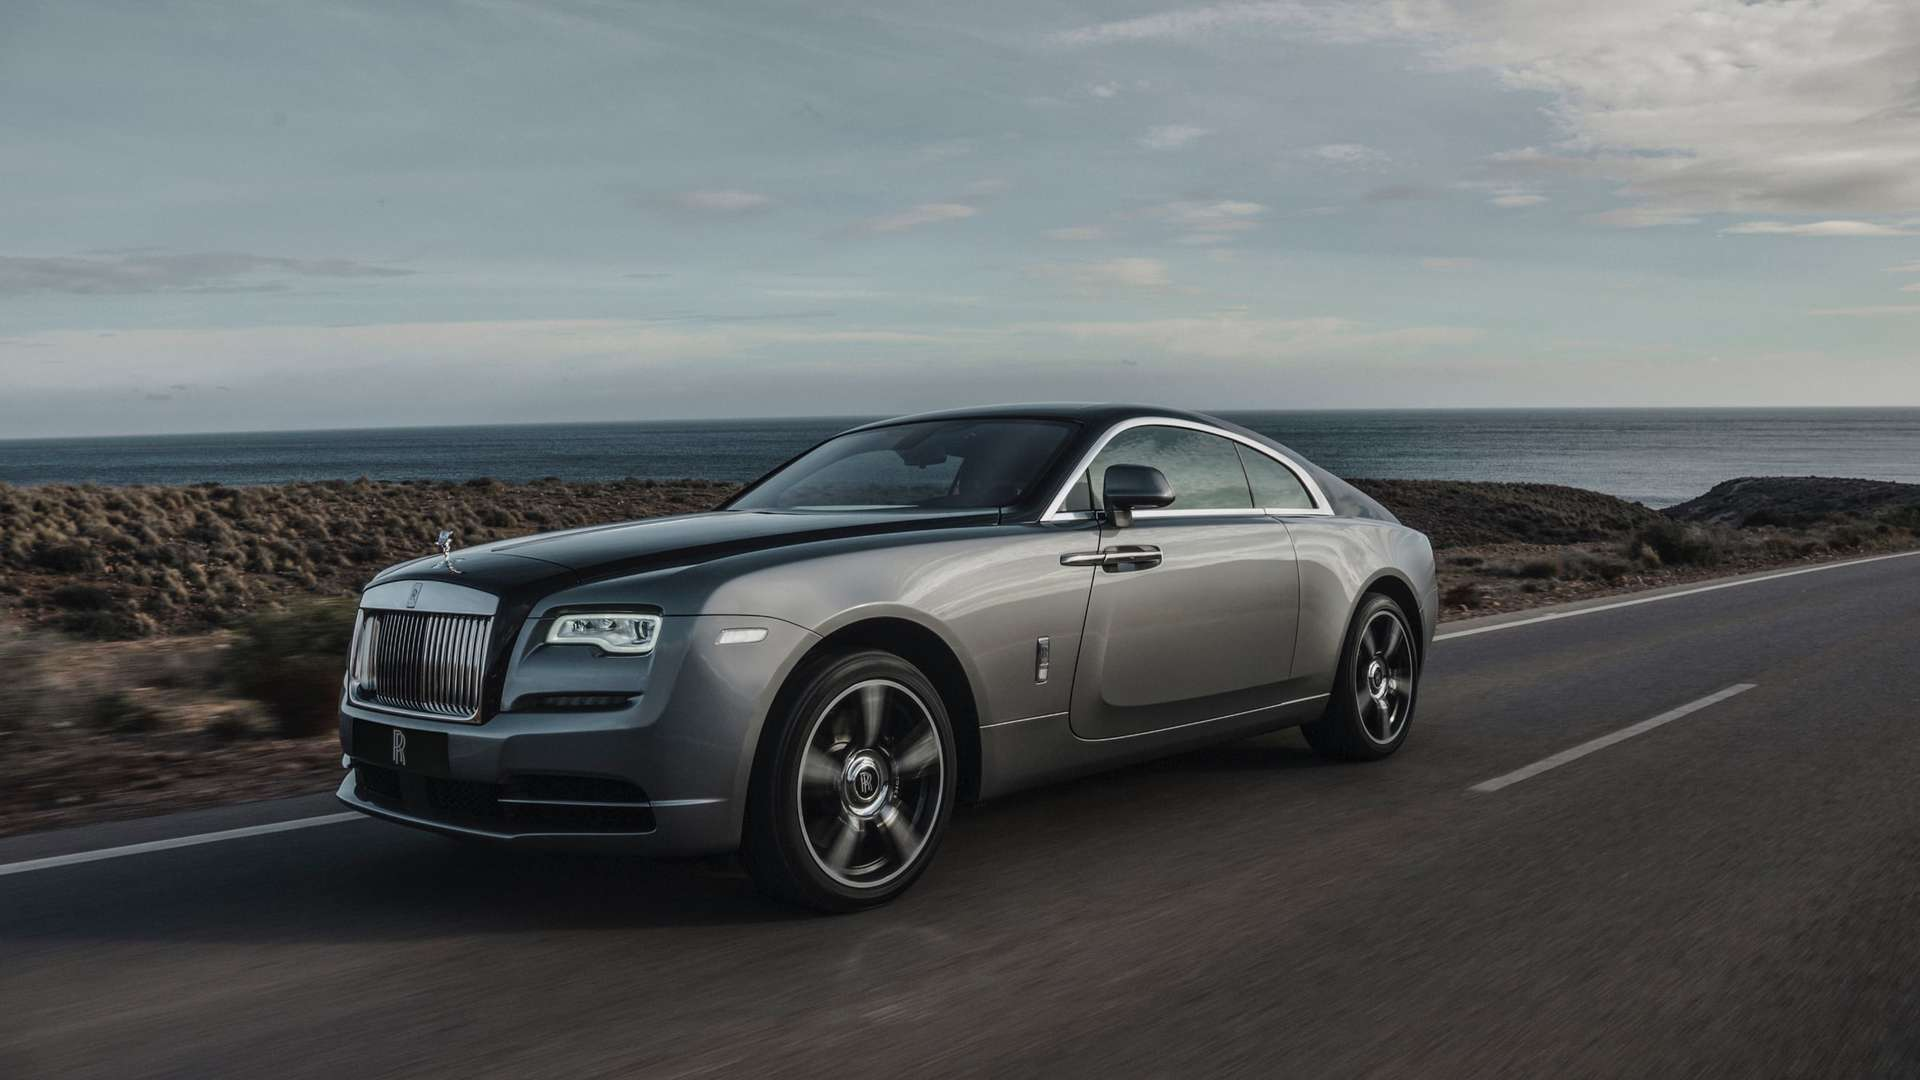 Rolls-Royce Wraith on the road, front side view, coastal path with sea view and cloudy sky